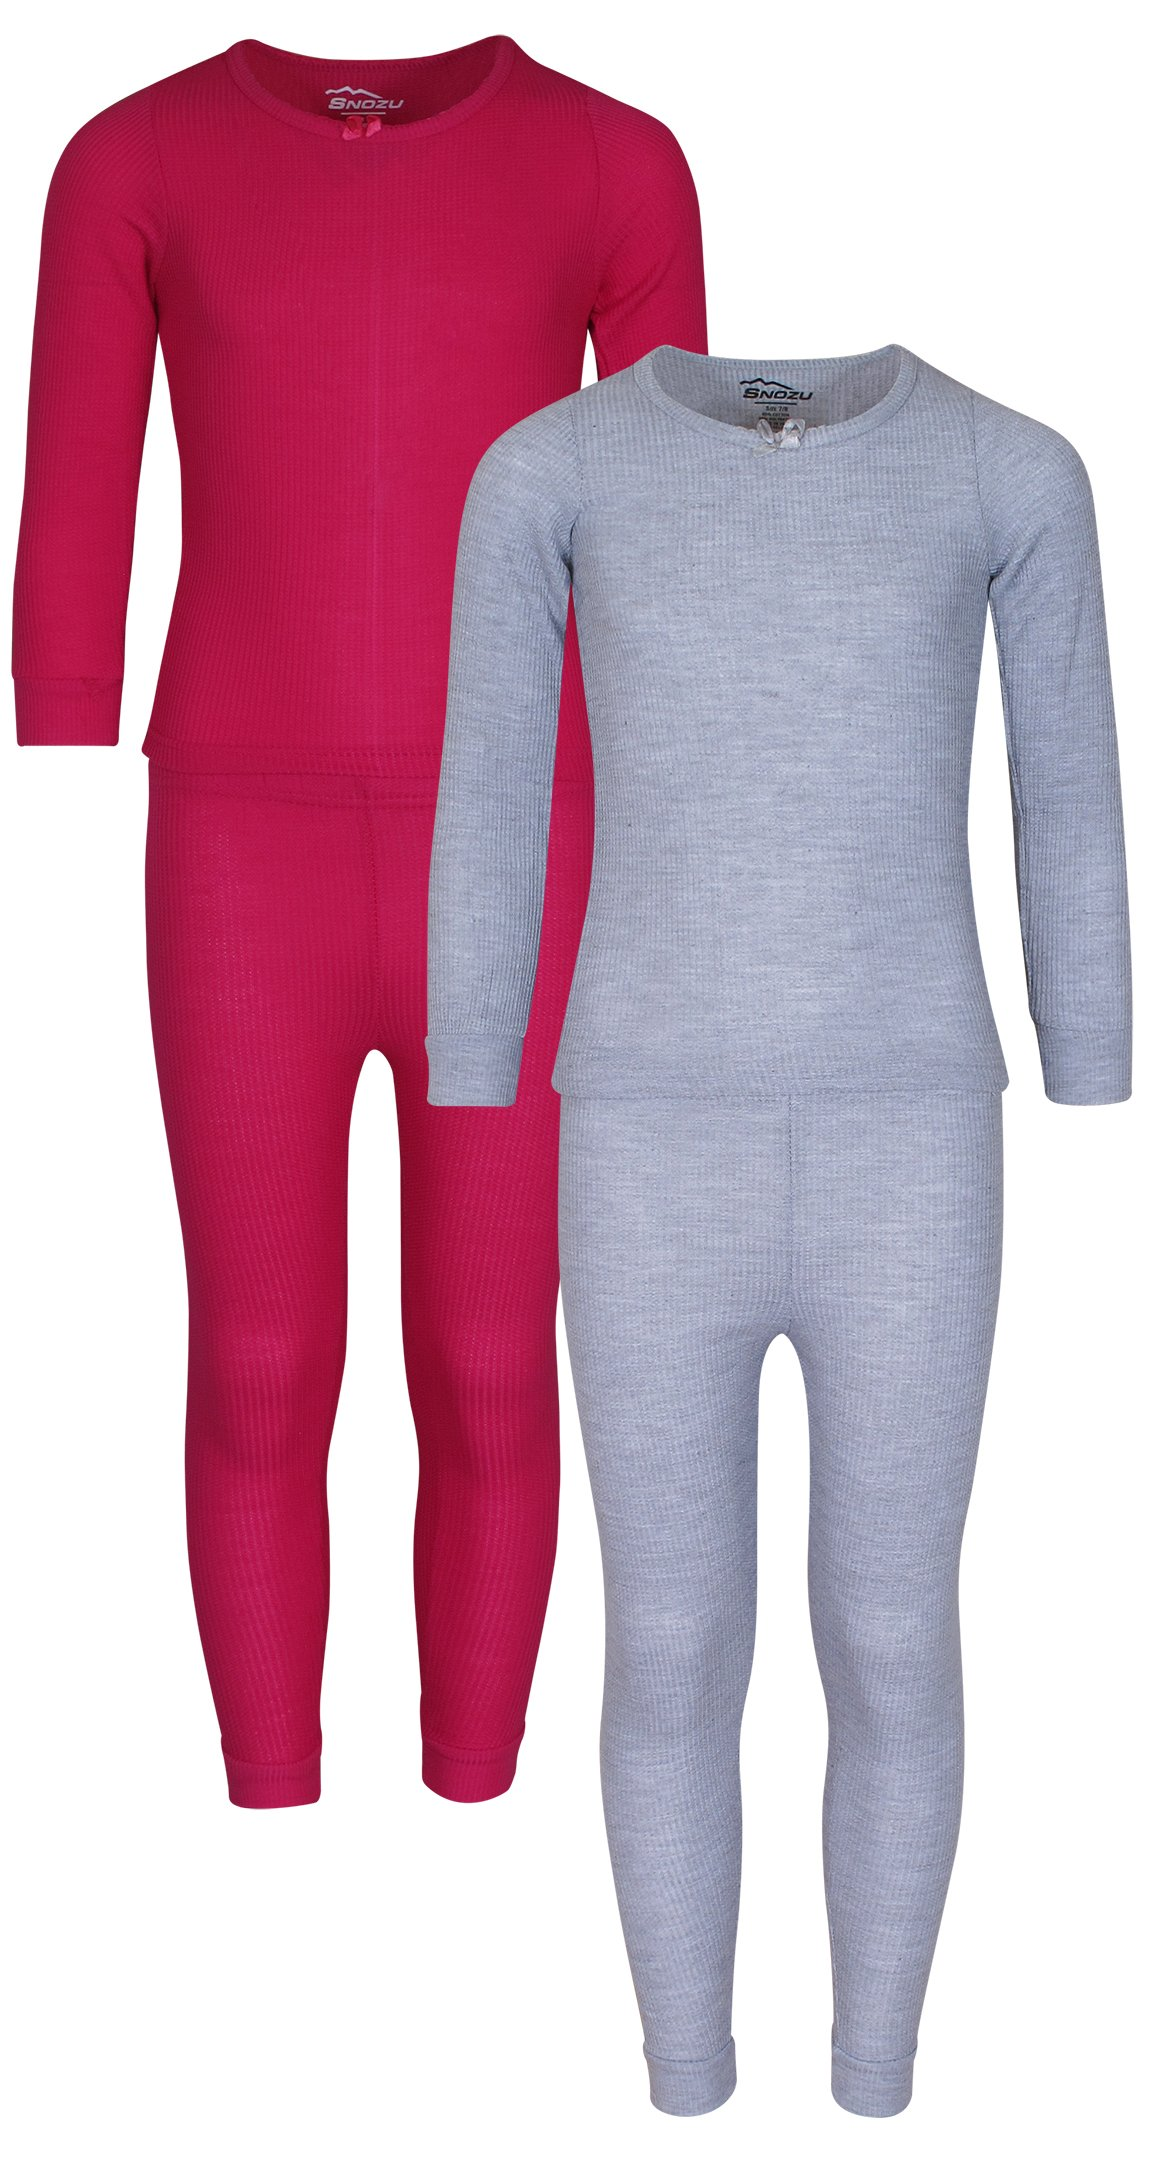 Snozu Girl's 2-Pack Thermal Warm Underwear Top and Pant Set, Light Grey/Fuchsia, Size 4'